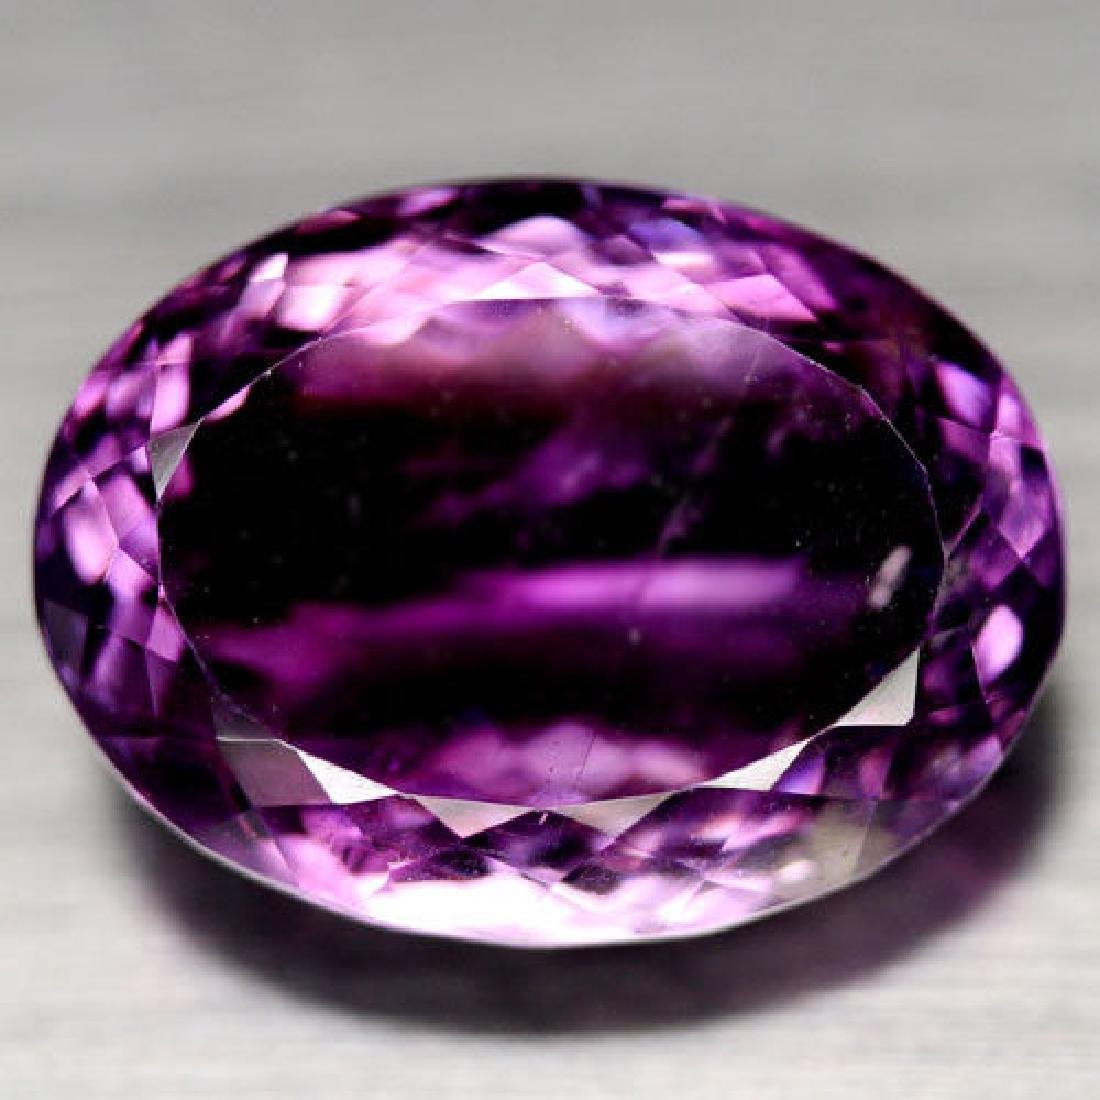 24.16 CT NATURAL! 15 X 21 mm. PURPLE CLR CHANGE TO PINK